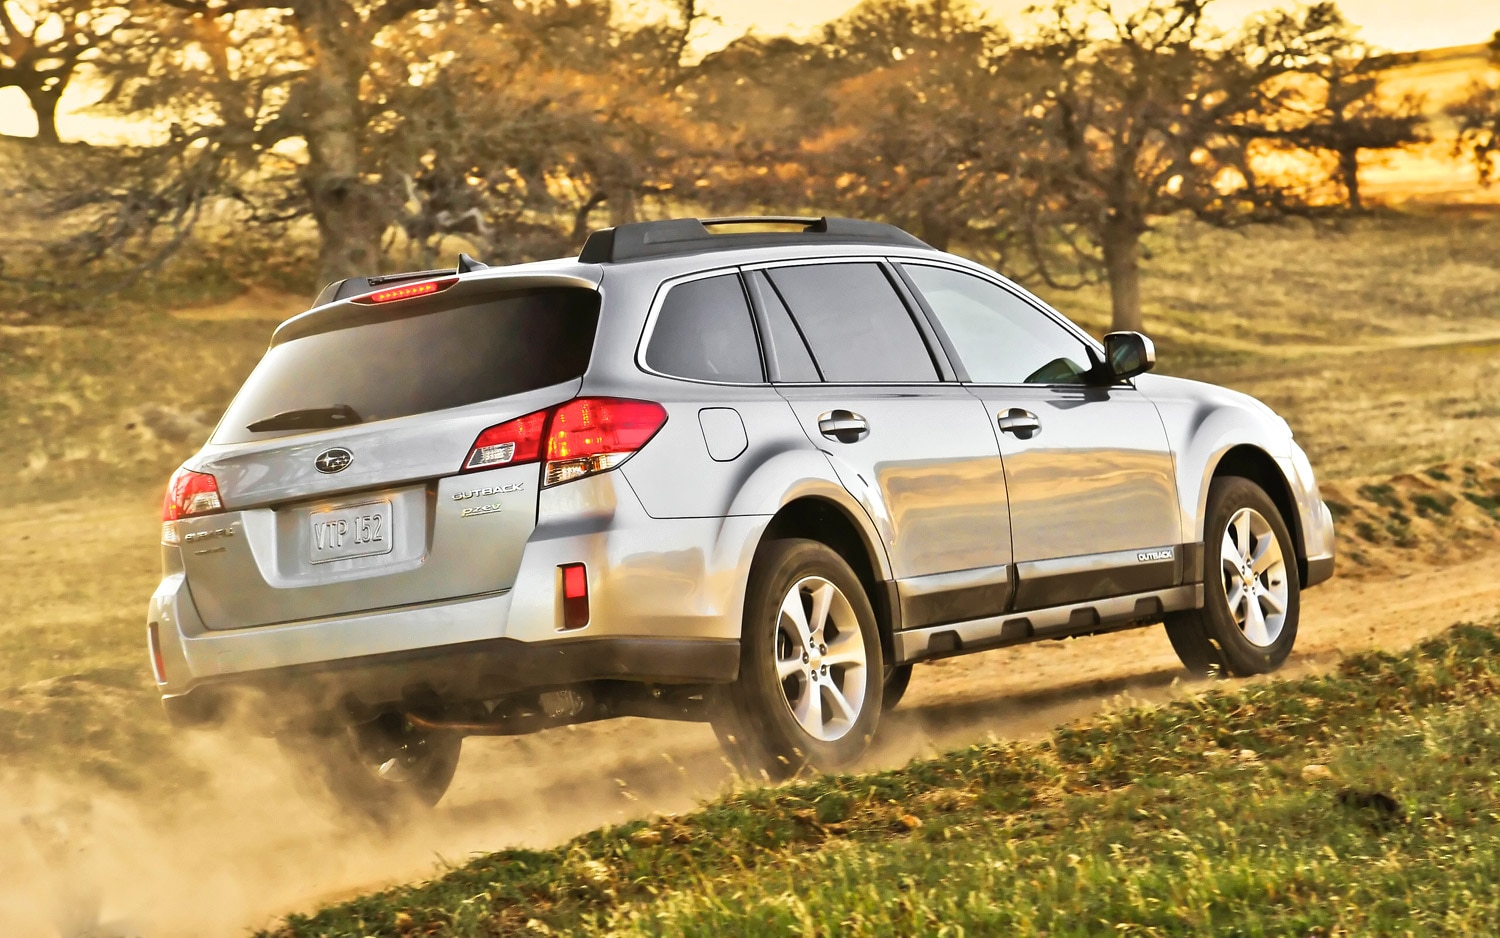 2013 subaru legacy outback recalled for steering failure. Black Bedroom Furniture Sets. Home Design Ideas